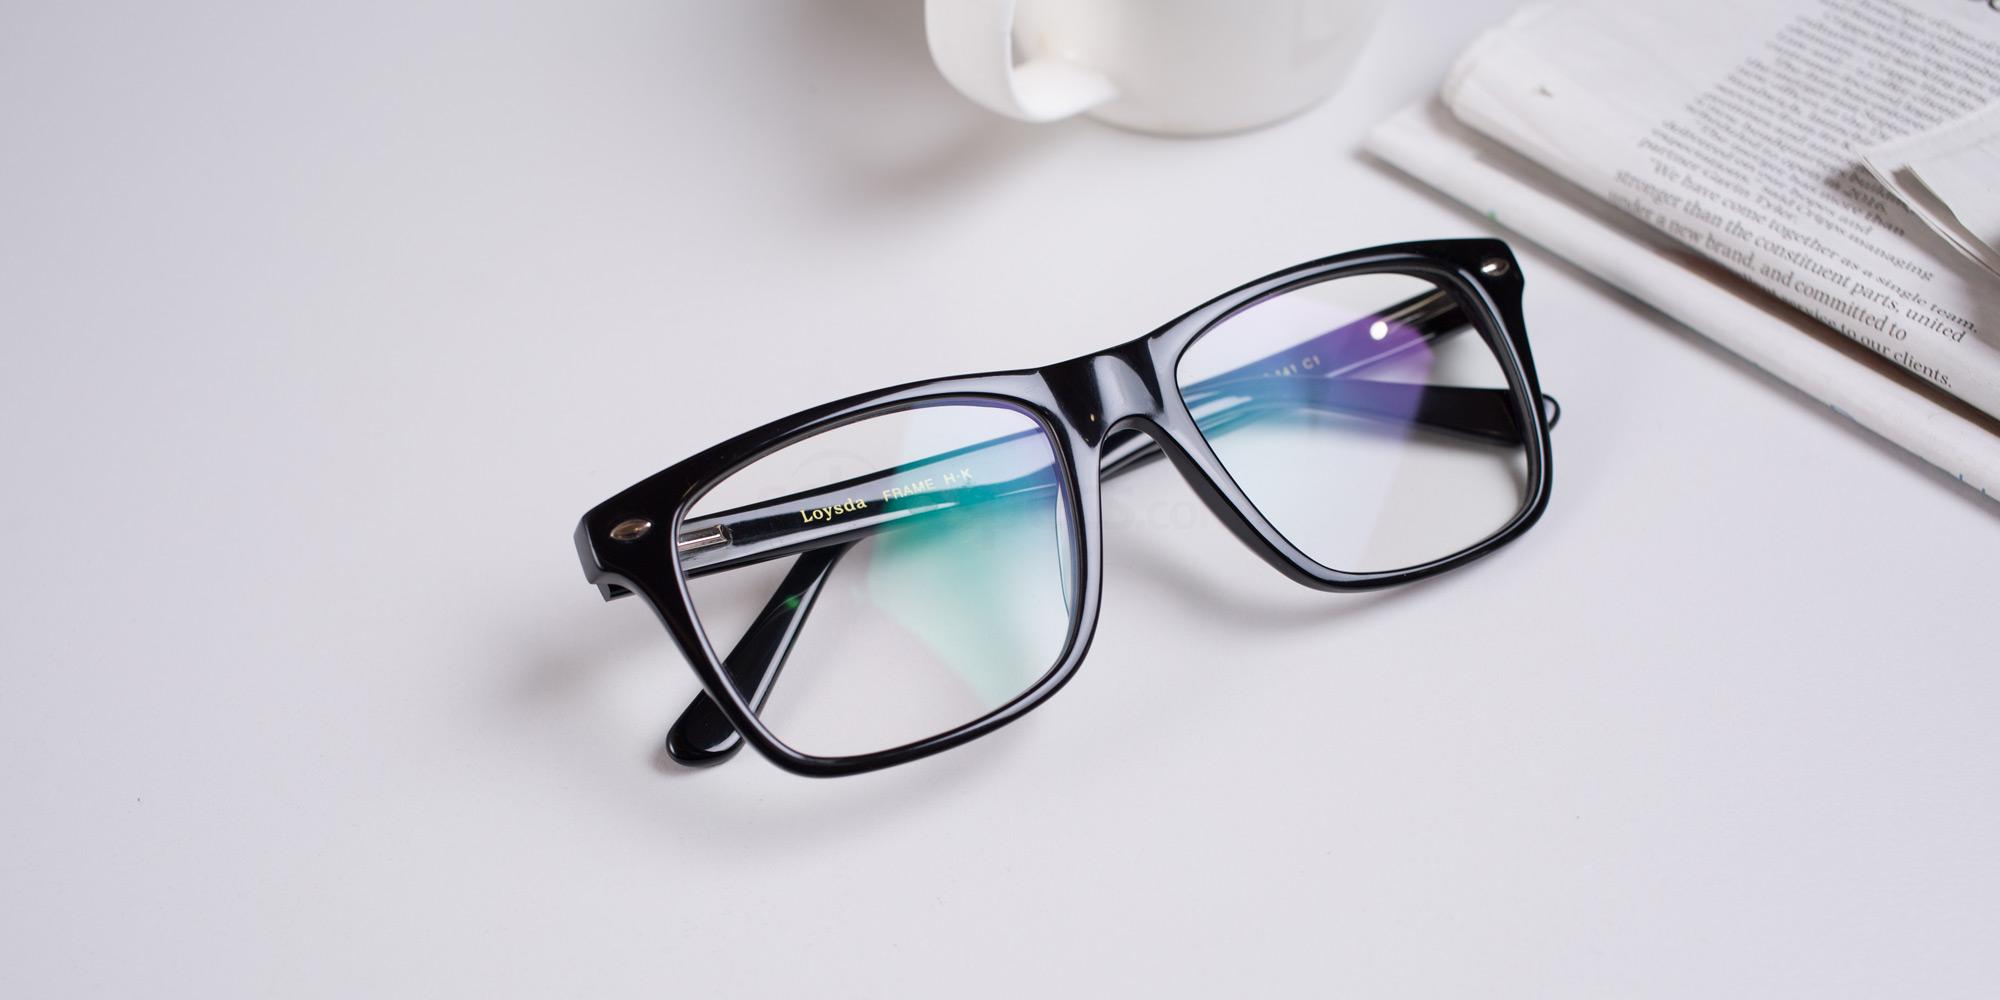 Hallmark-8812-black-thick-square-prescription-glasses